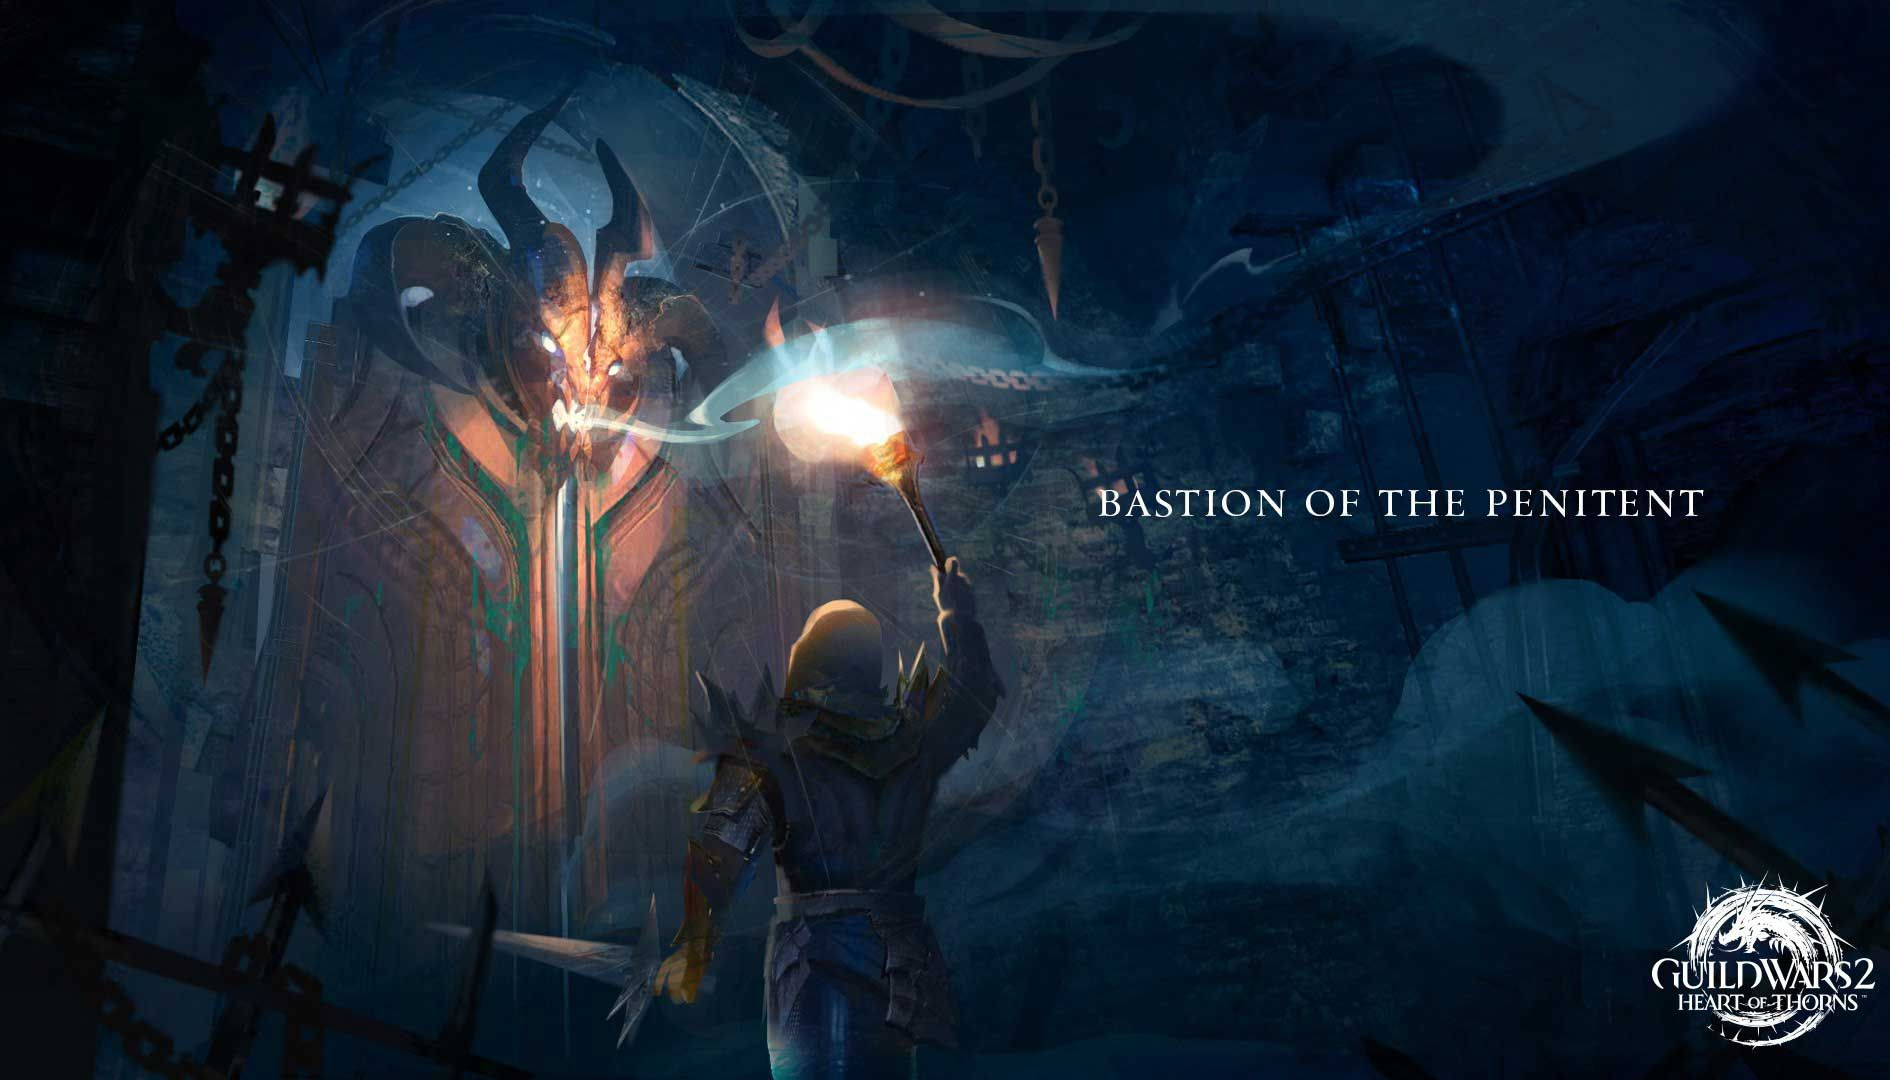 The Demons of Bastion of the Penitent - MMORPG com